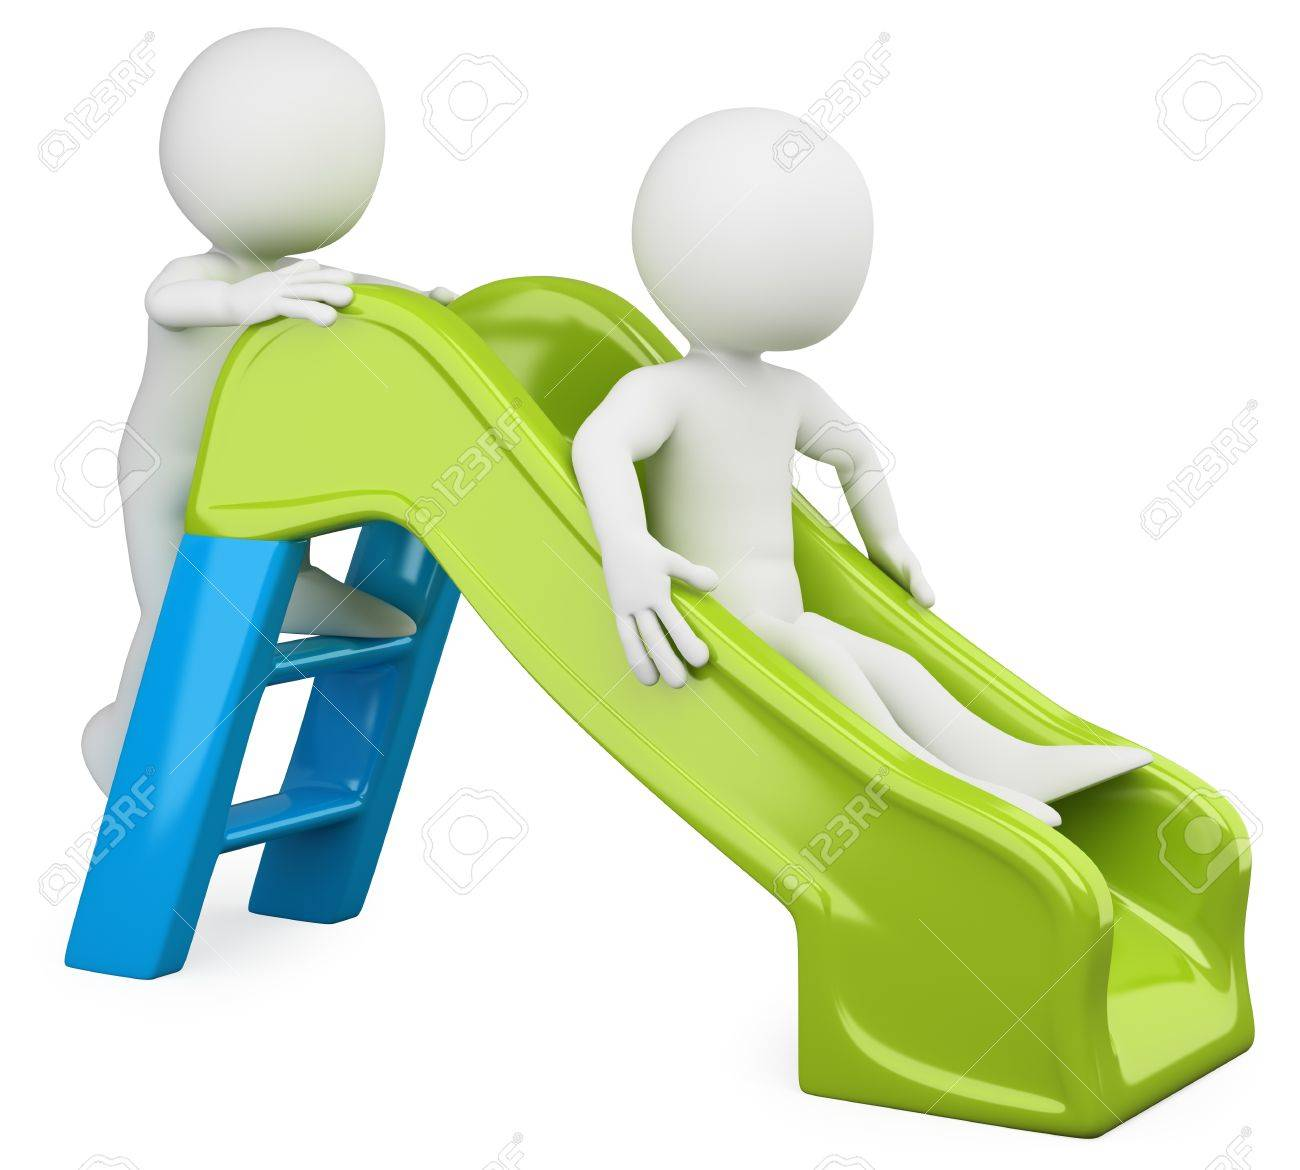 3D children - Slide  Rendered at high resolution on a white background with diffuse shadows Stock Photo - 13212809